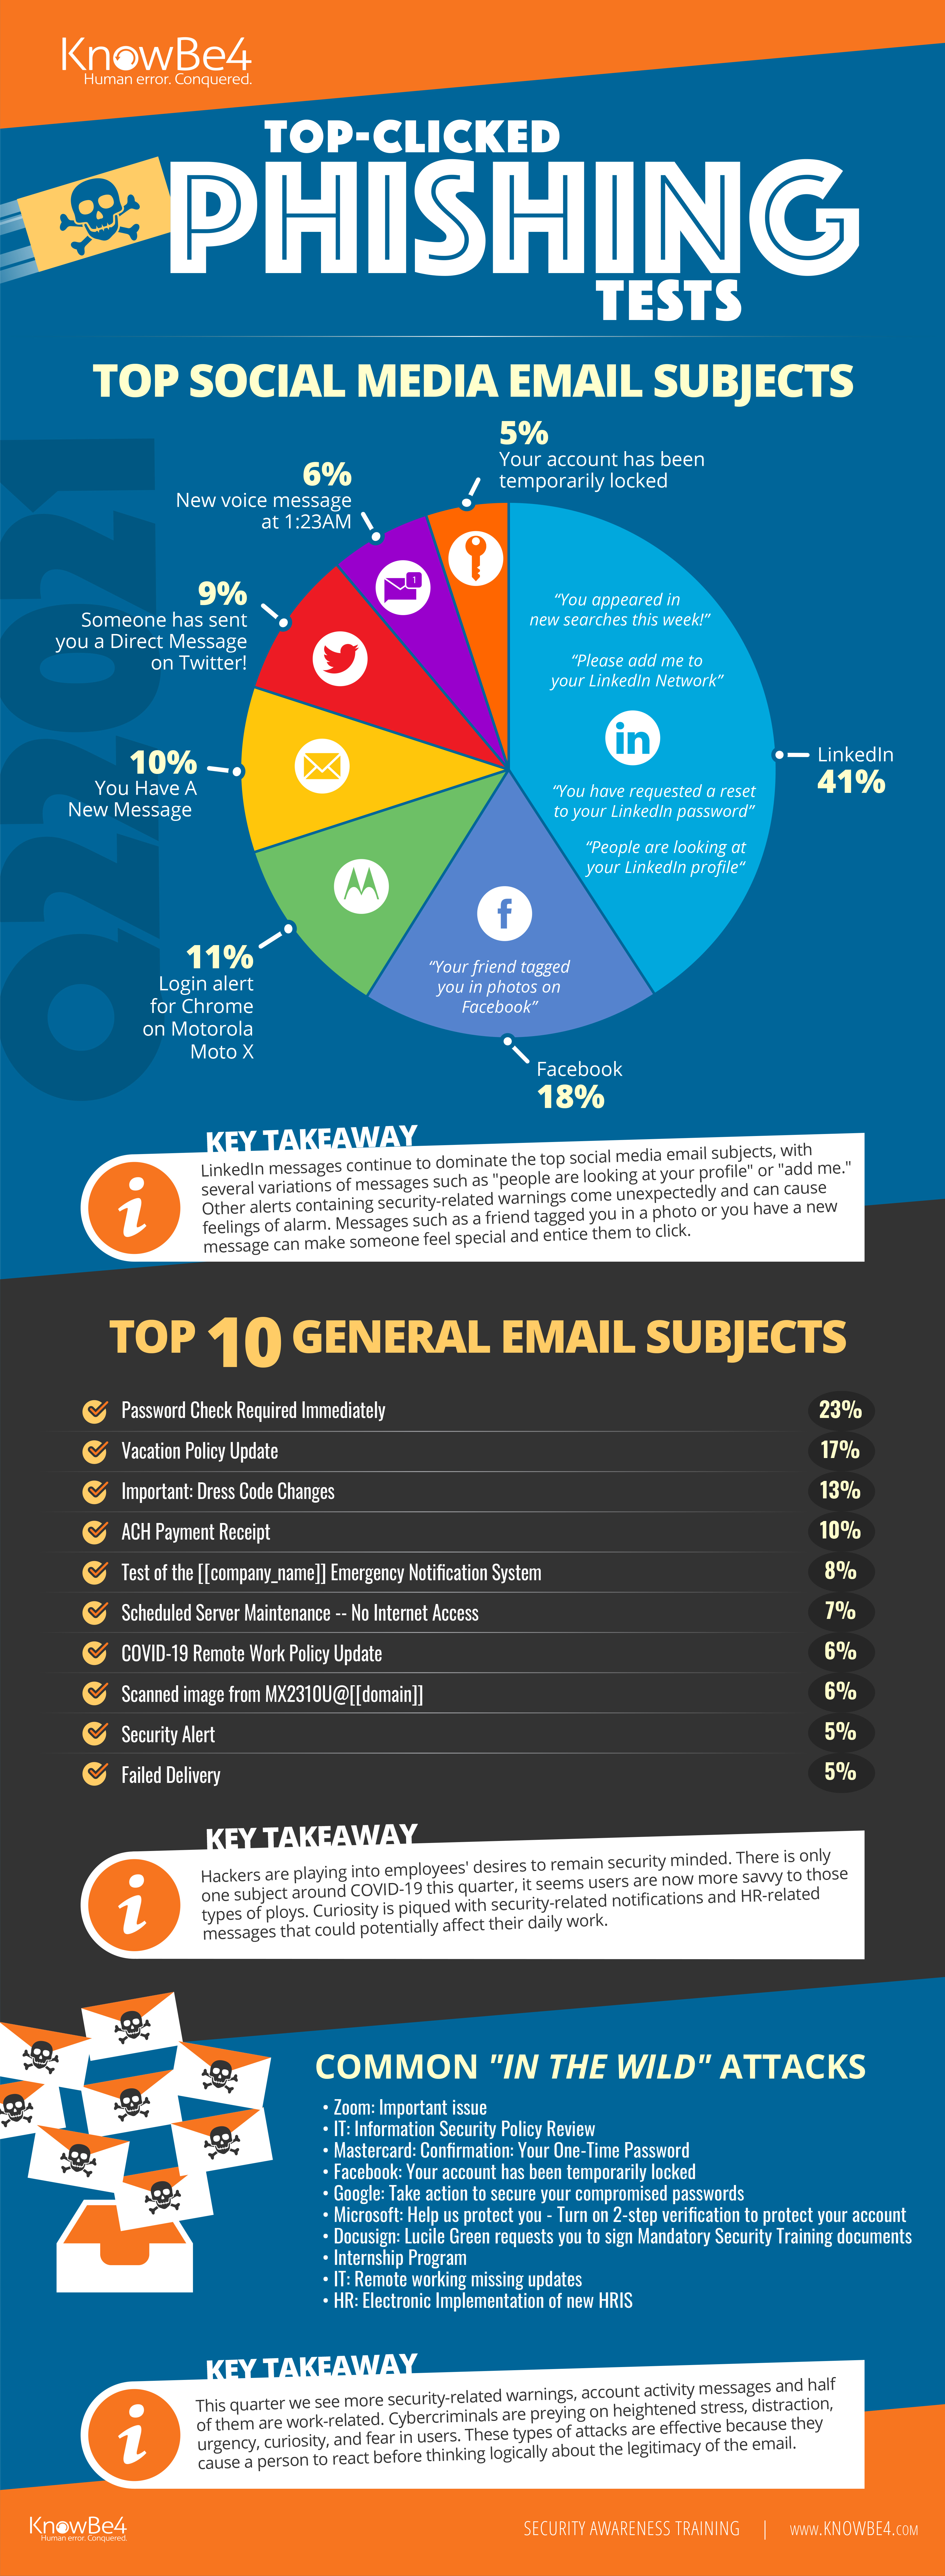 Q2-2021-Top-Clicked-Phishing-Email-Subjects